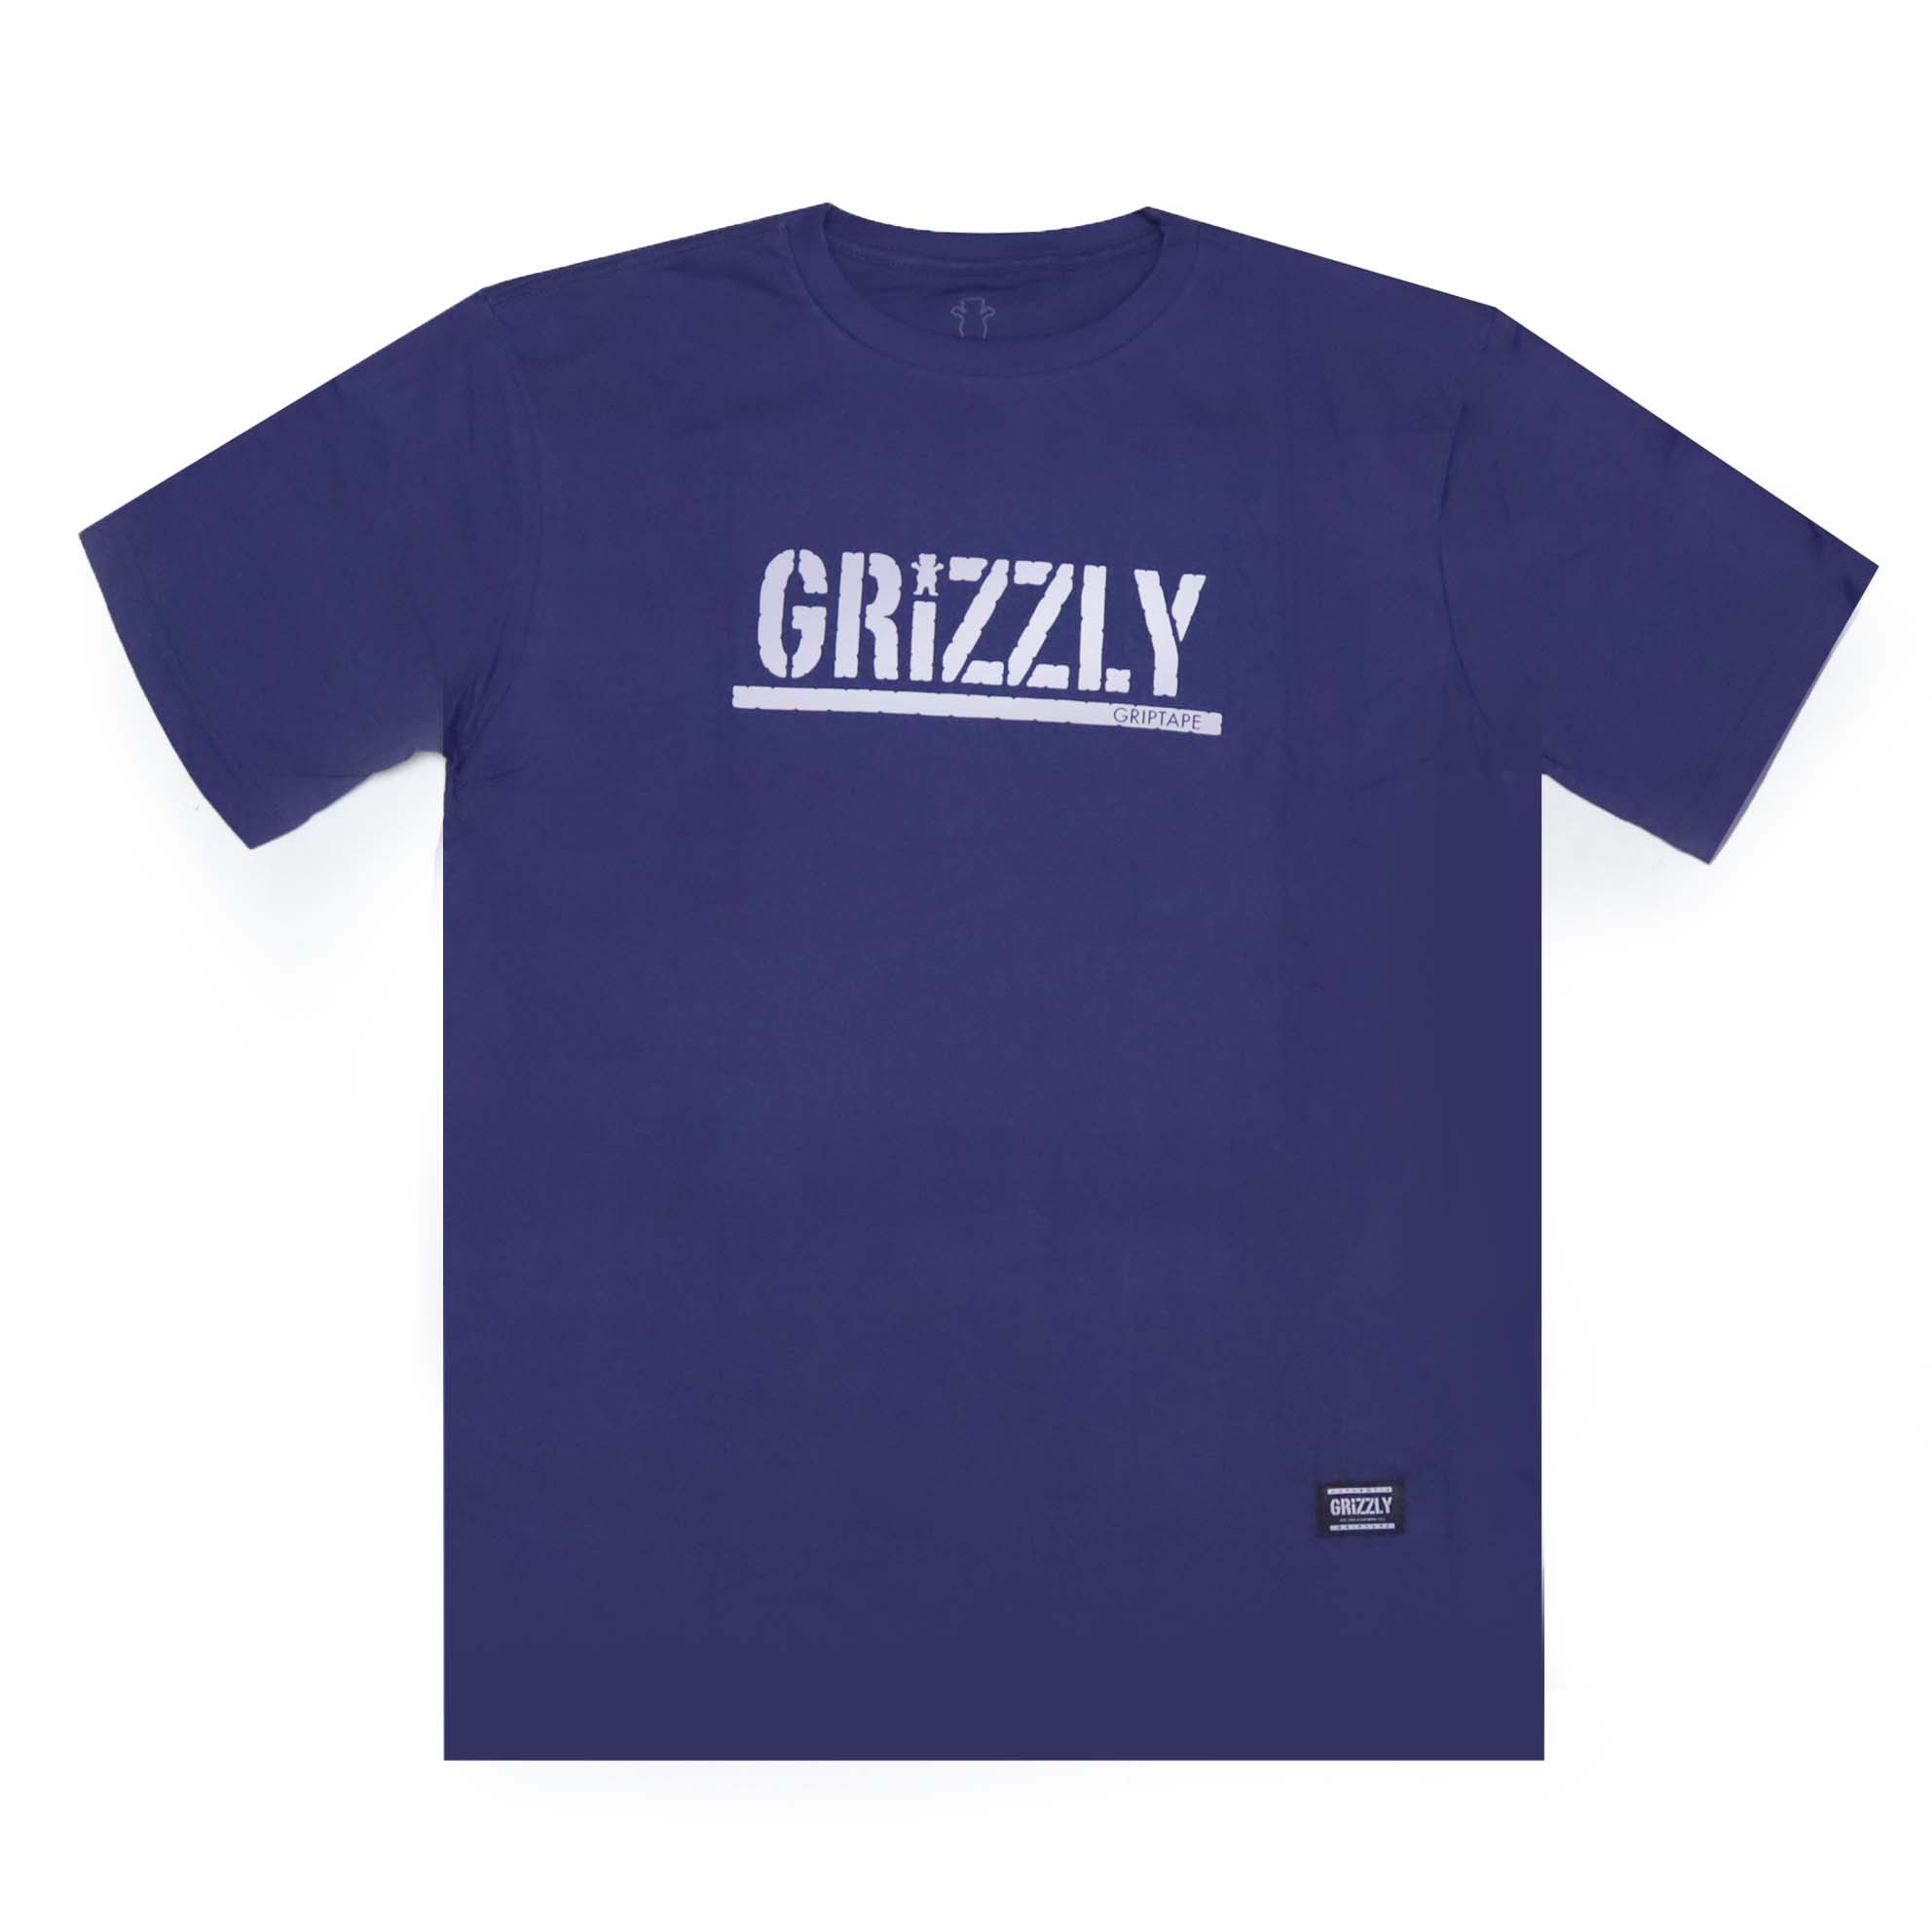 Camiseta Grizzly Stamped - Roxo/Branco